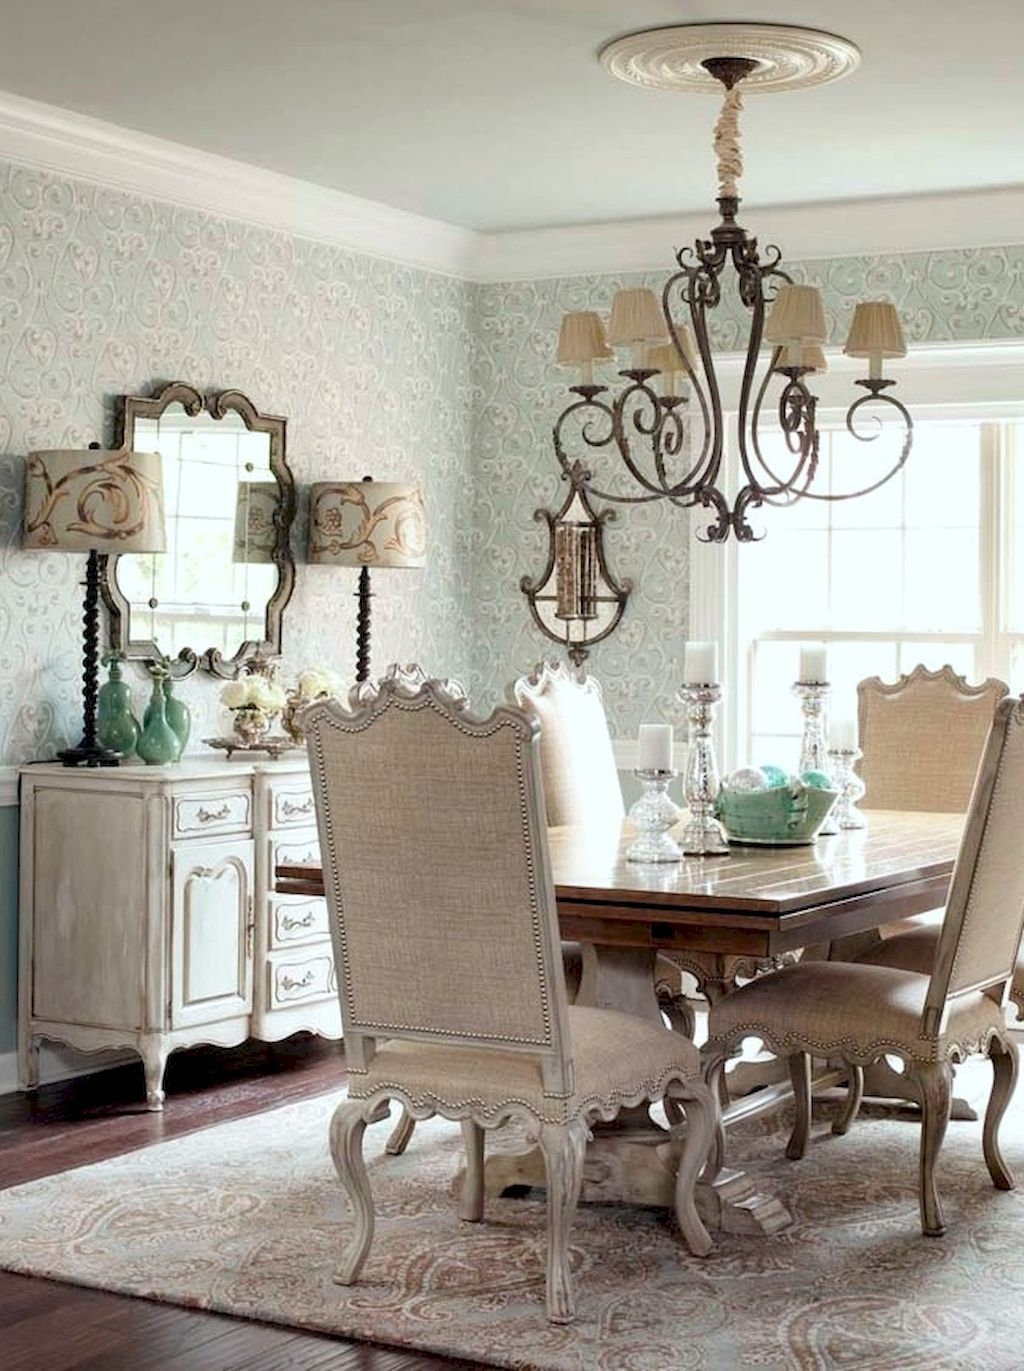 65 Vintage French Country Dining Room Design Ideas  French Amusing French Country Dining Room Chairs 2018